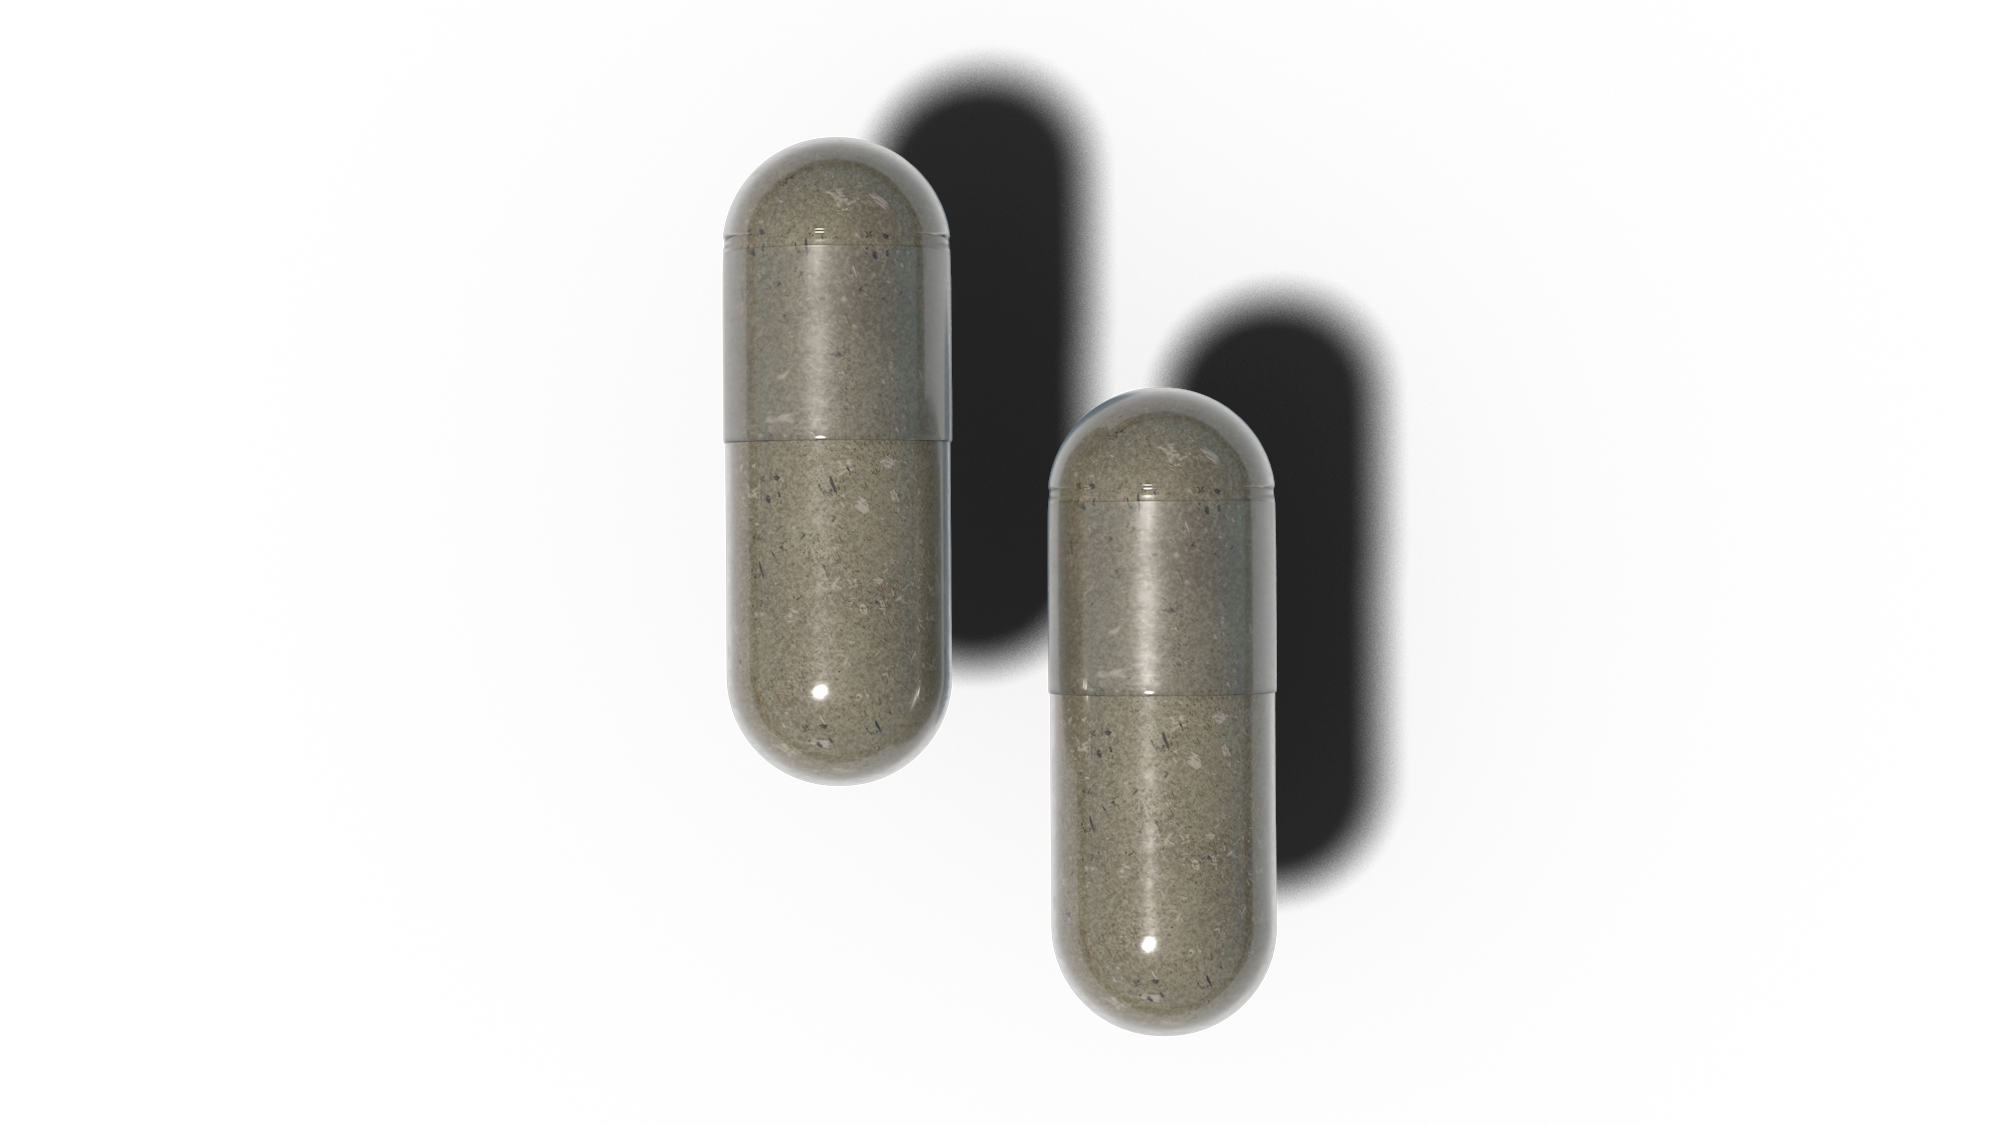 Two sleep supplement capsules